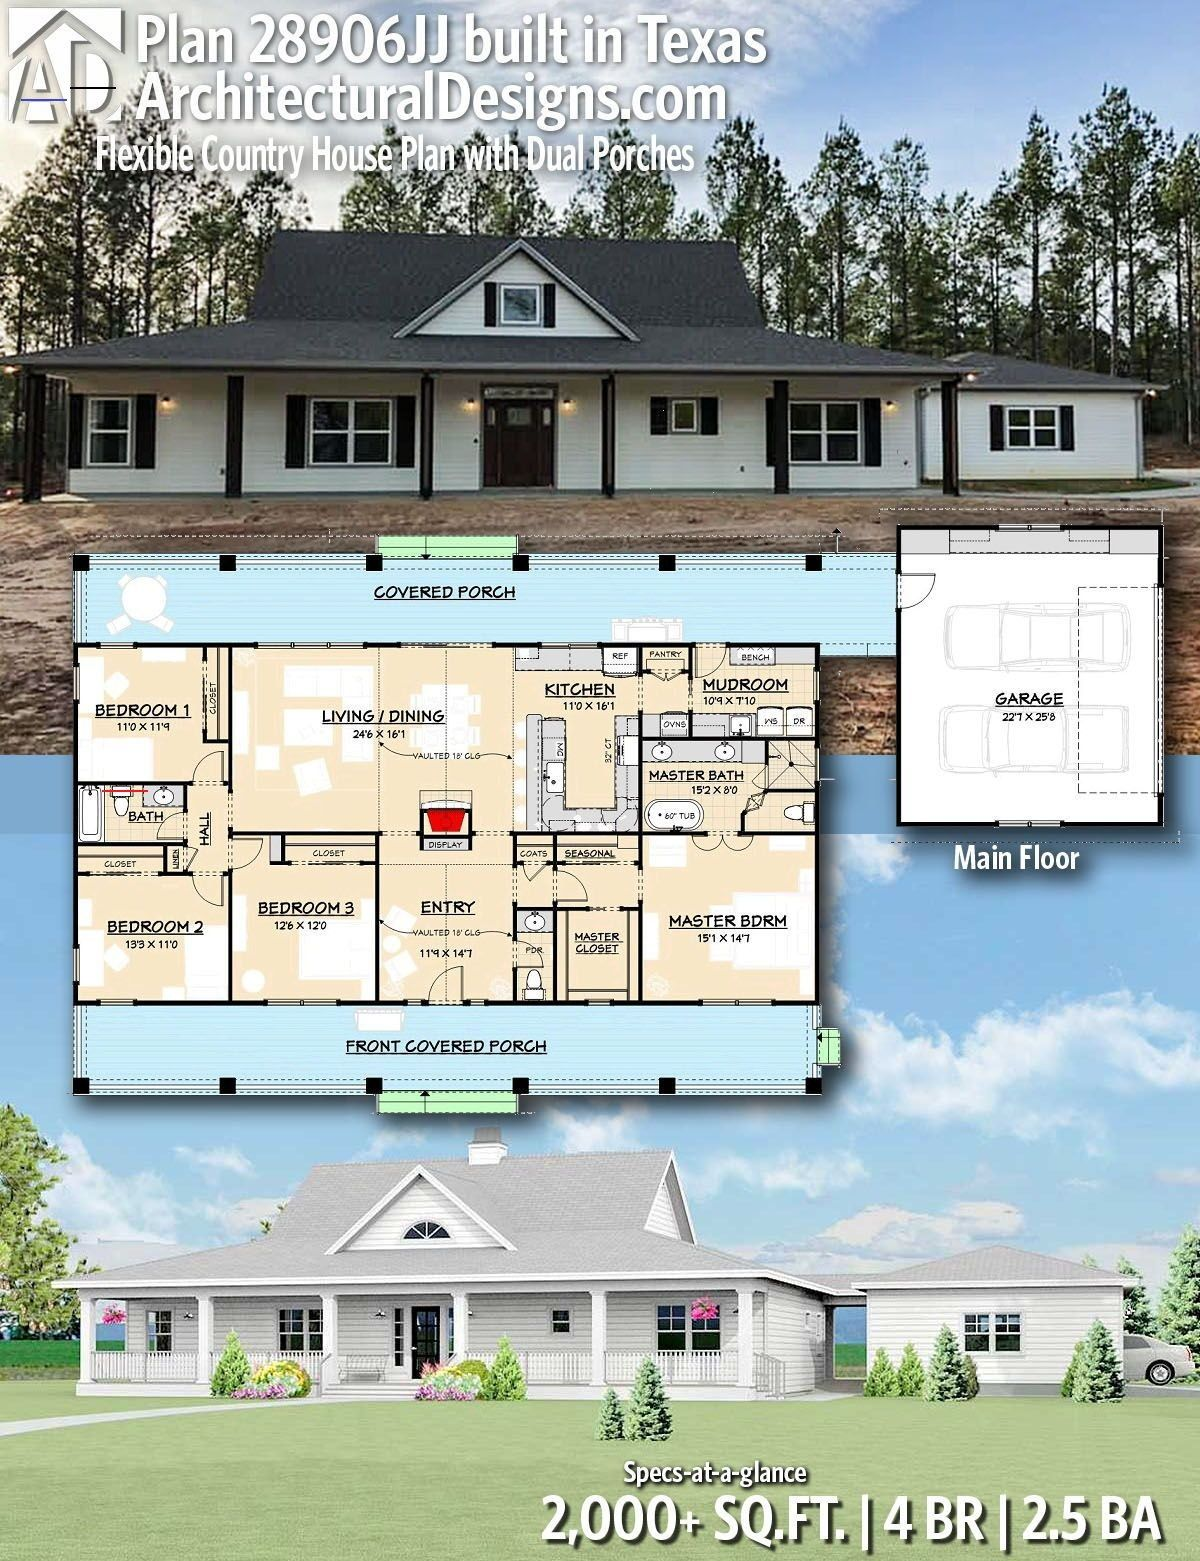 Plan 28906jj Flexible Country House Plan With Dual Porches Polebarnhomes Delightful Covered Por In 2020 Pole Barn House Plans Barn House Plans Country House Plan